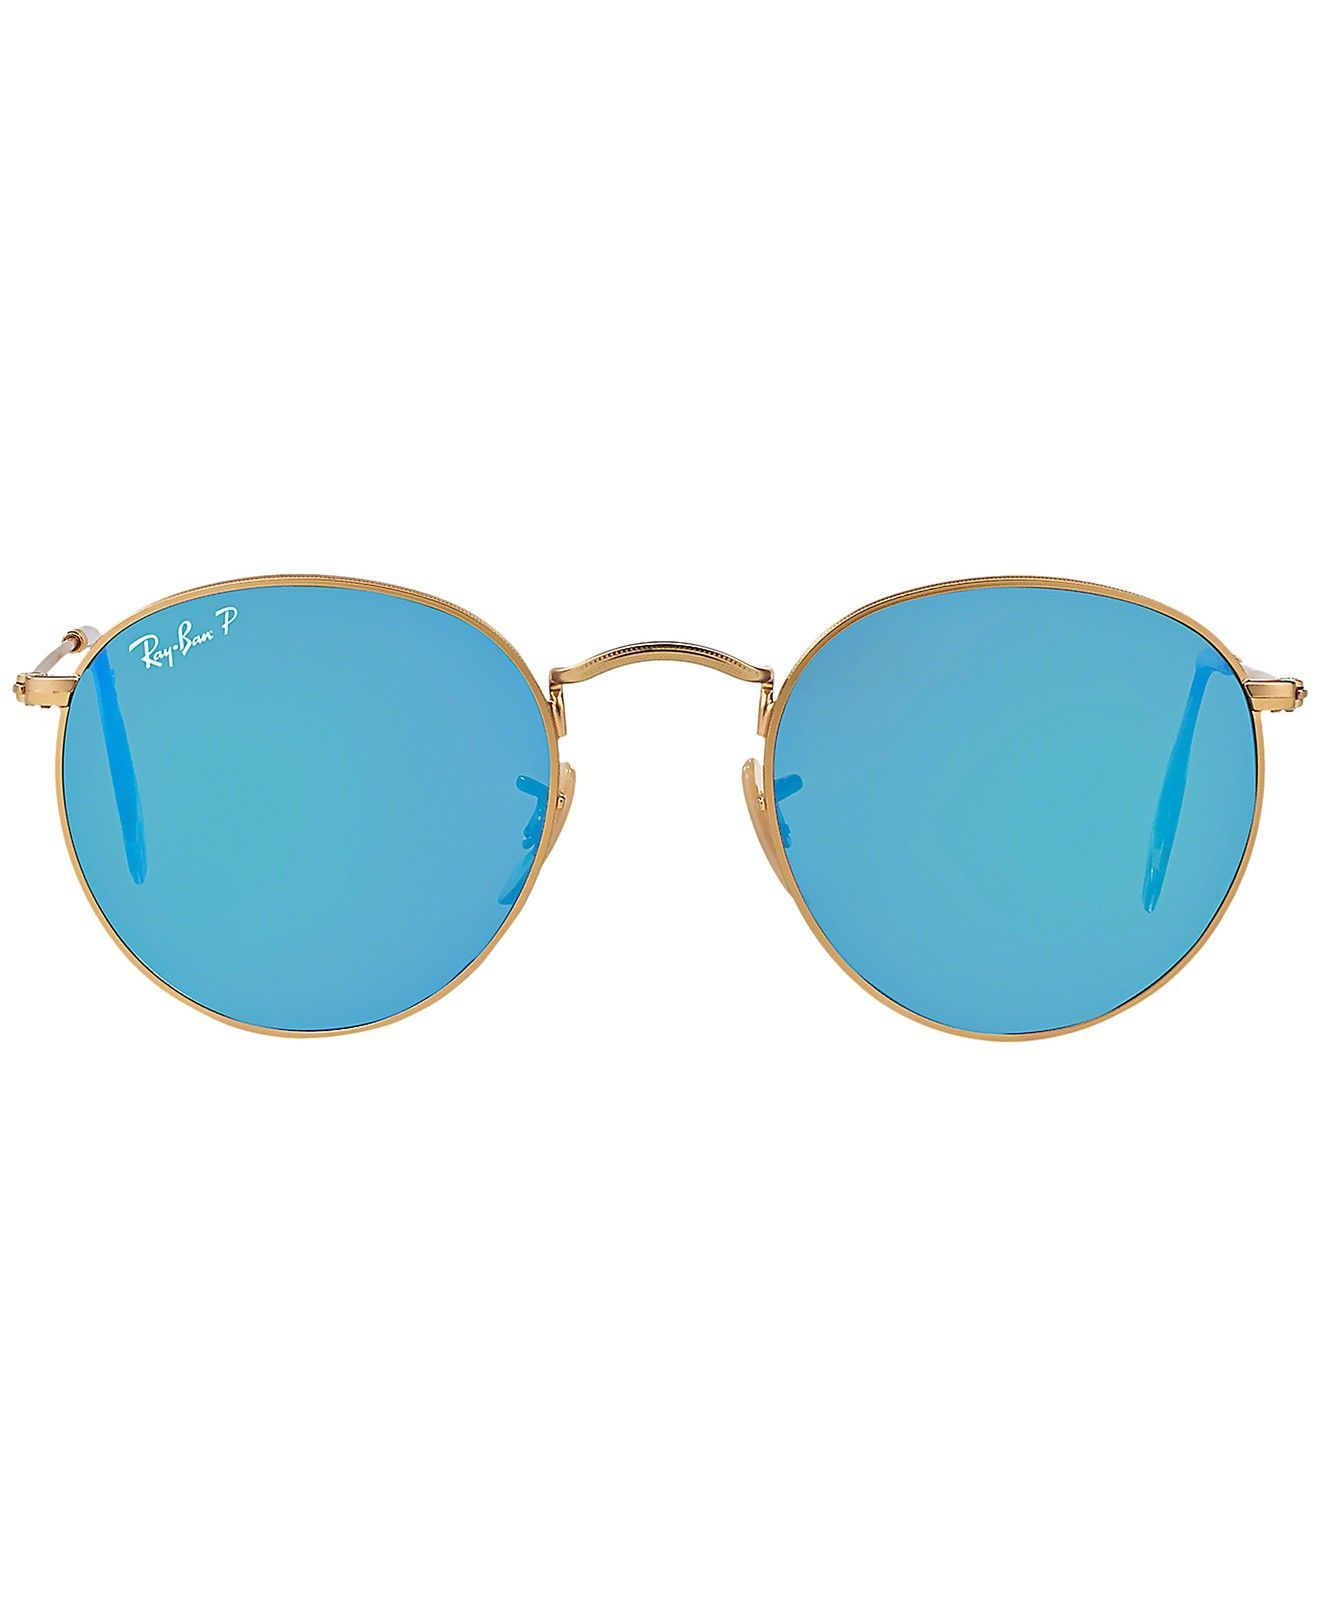 9cd7c51e70 ... new zealand ray ban sunglasses ray ban rb3447 50 round metal sunglasses  by sunglass 5a876 cfc43 ...